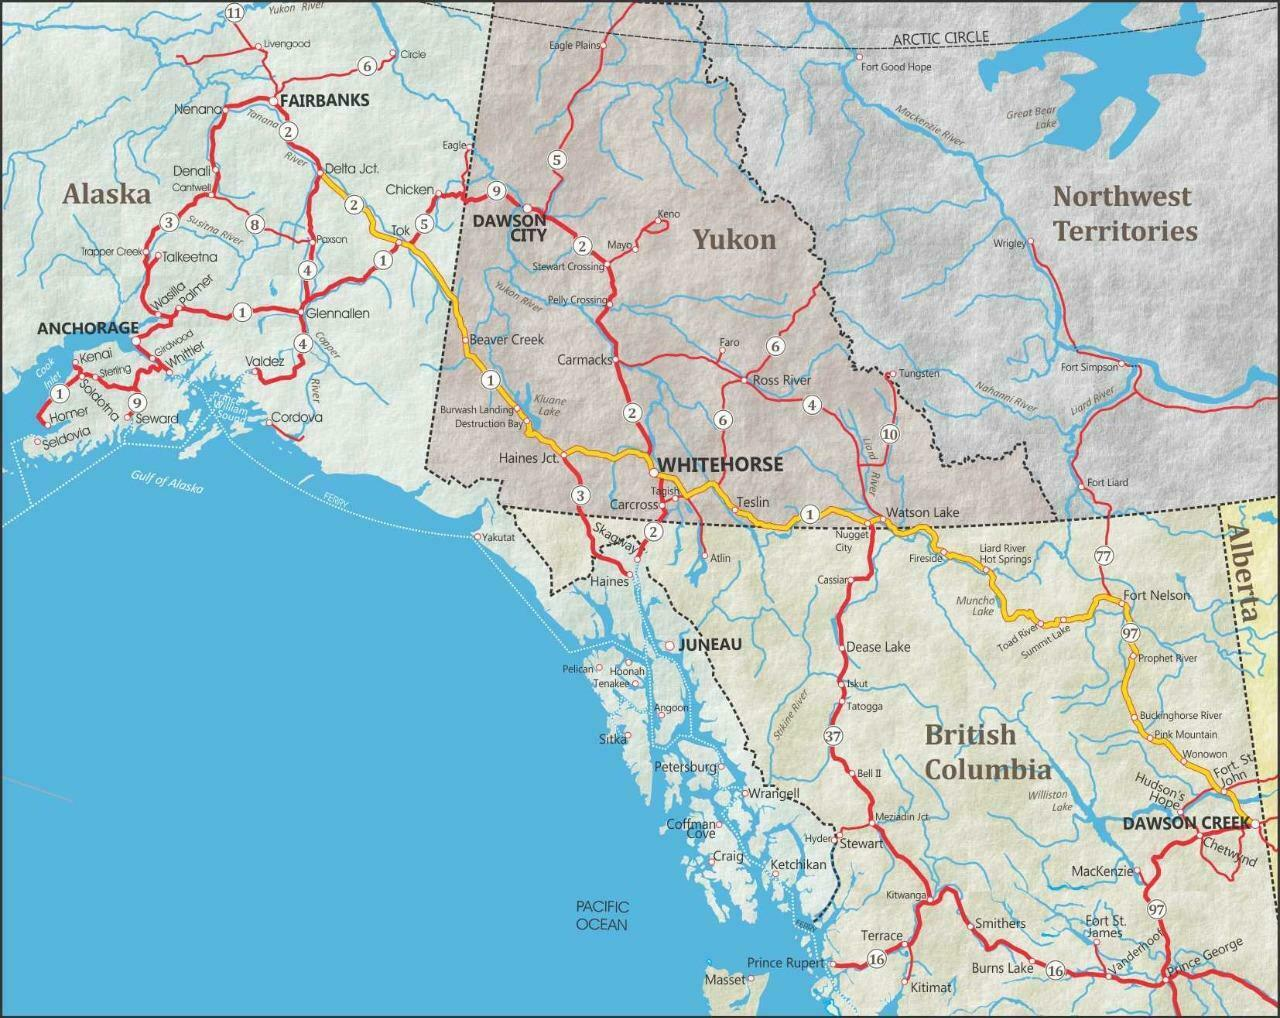 ALASKA ROAD MAP GLOSSY POSTER PICTURE PHOTO city county state alaskan ak 2440